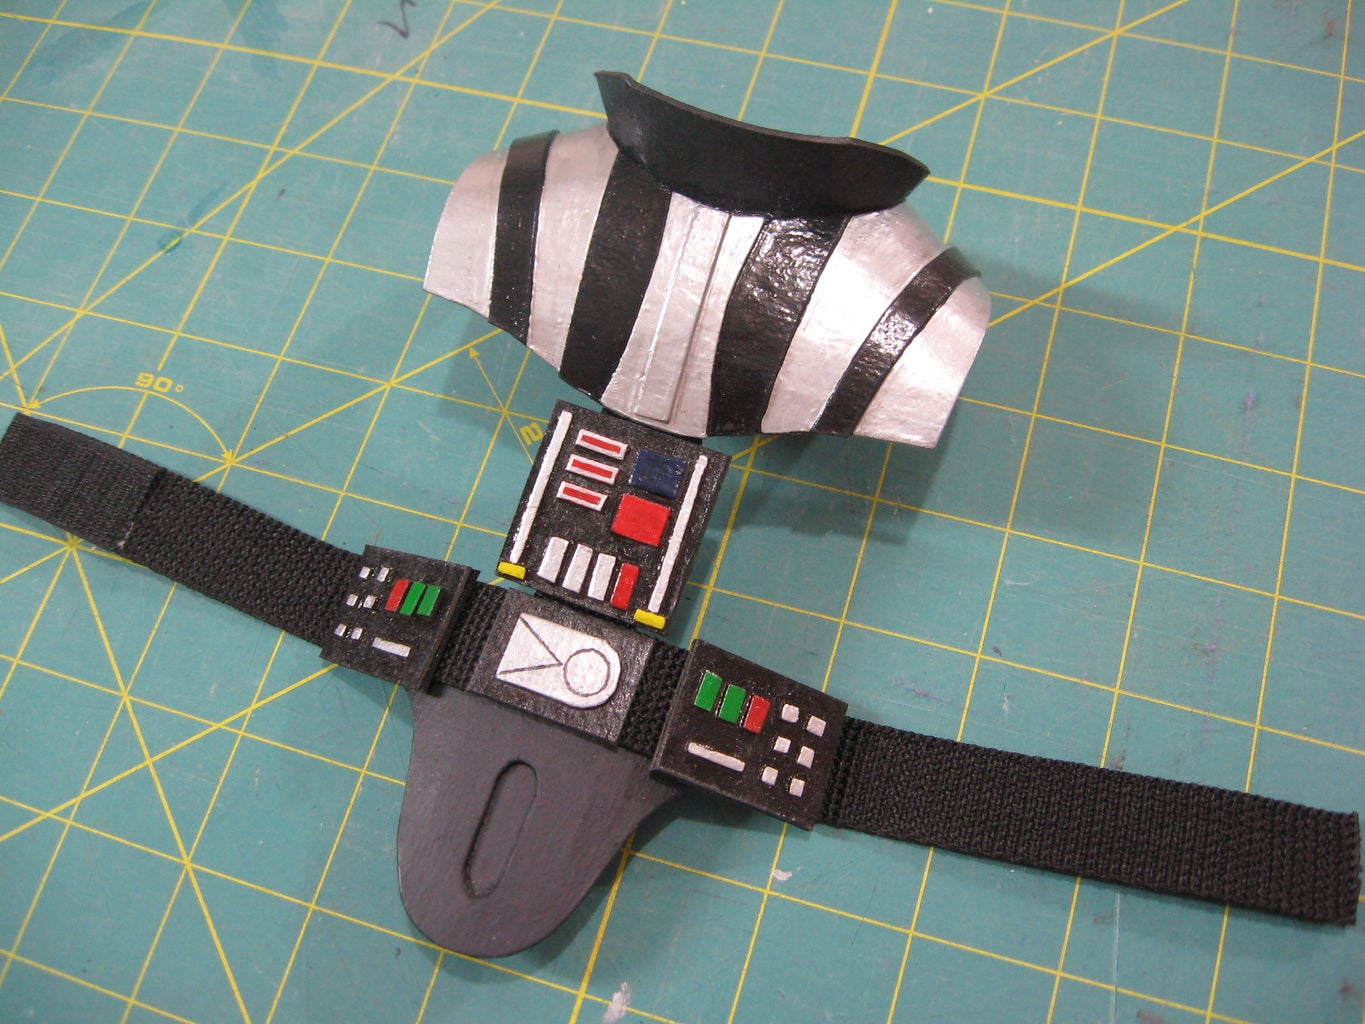 Vader's Belt and Shoulder Pieces, and Face